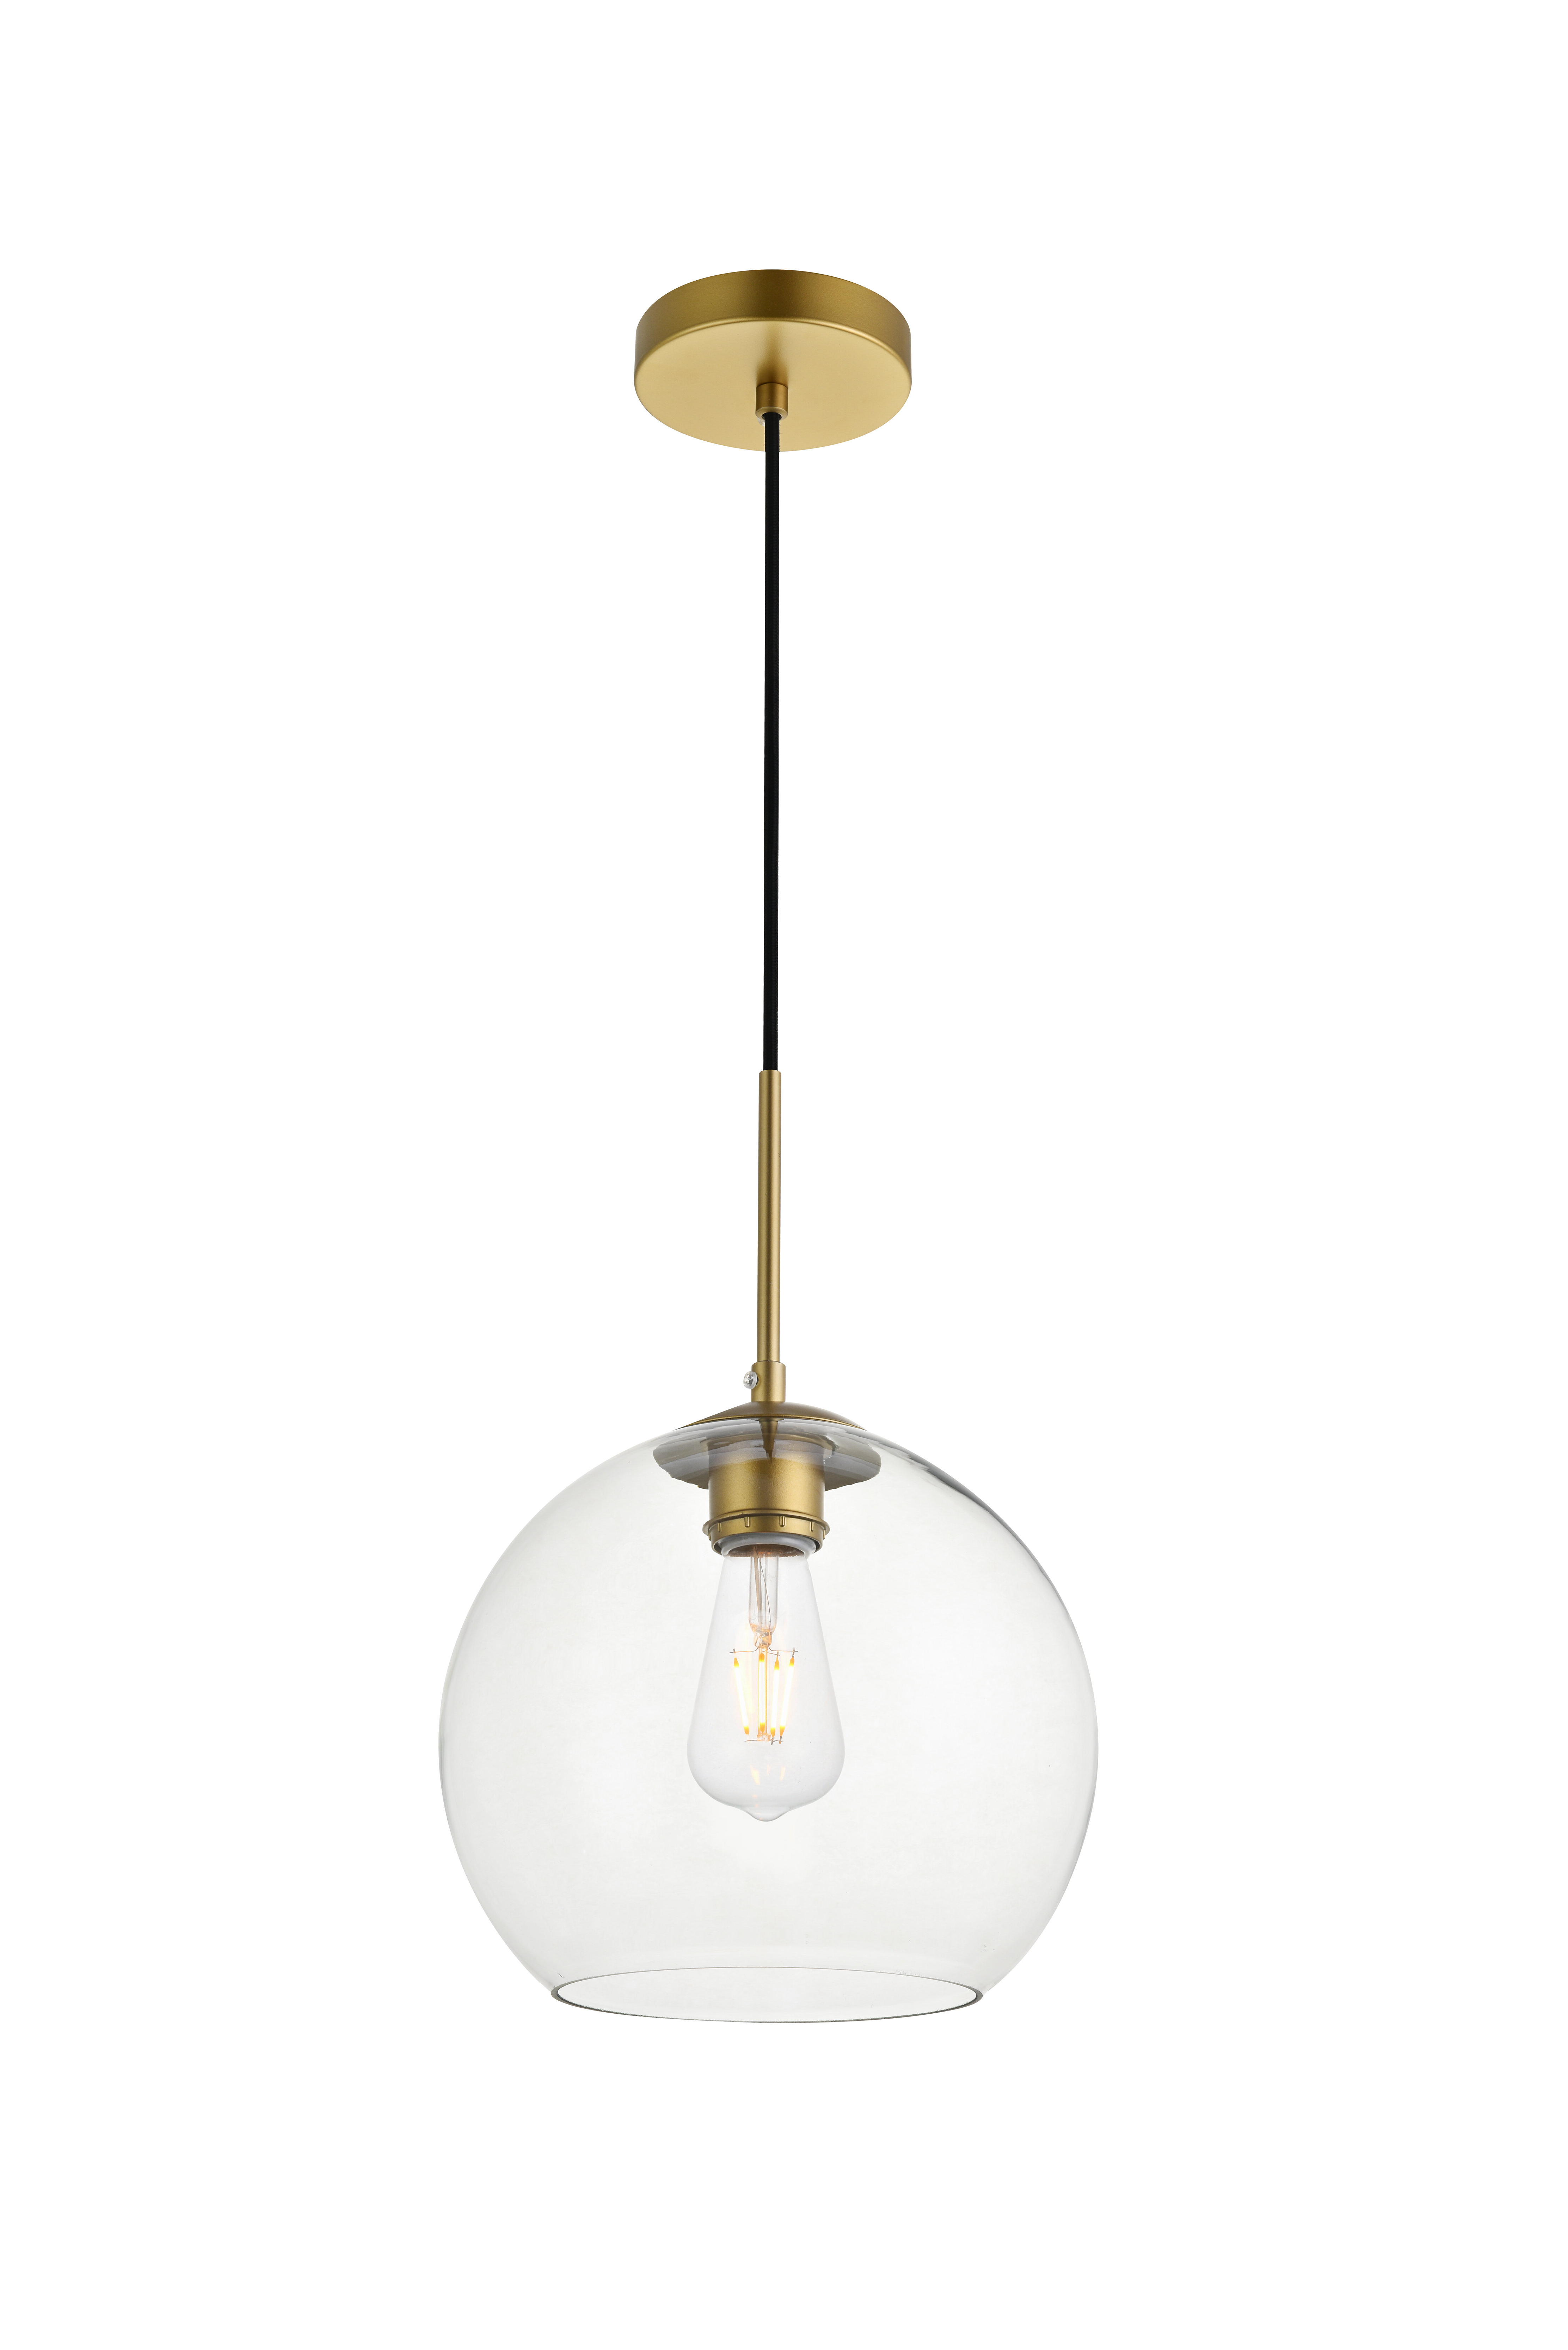 Bundy 1 Light Single Globe Pendants Within Most Current Yearwood 1 Light Single Globe Pendant (View 7 of 20)